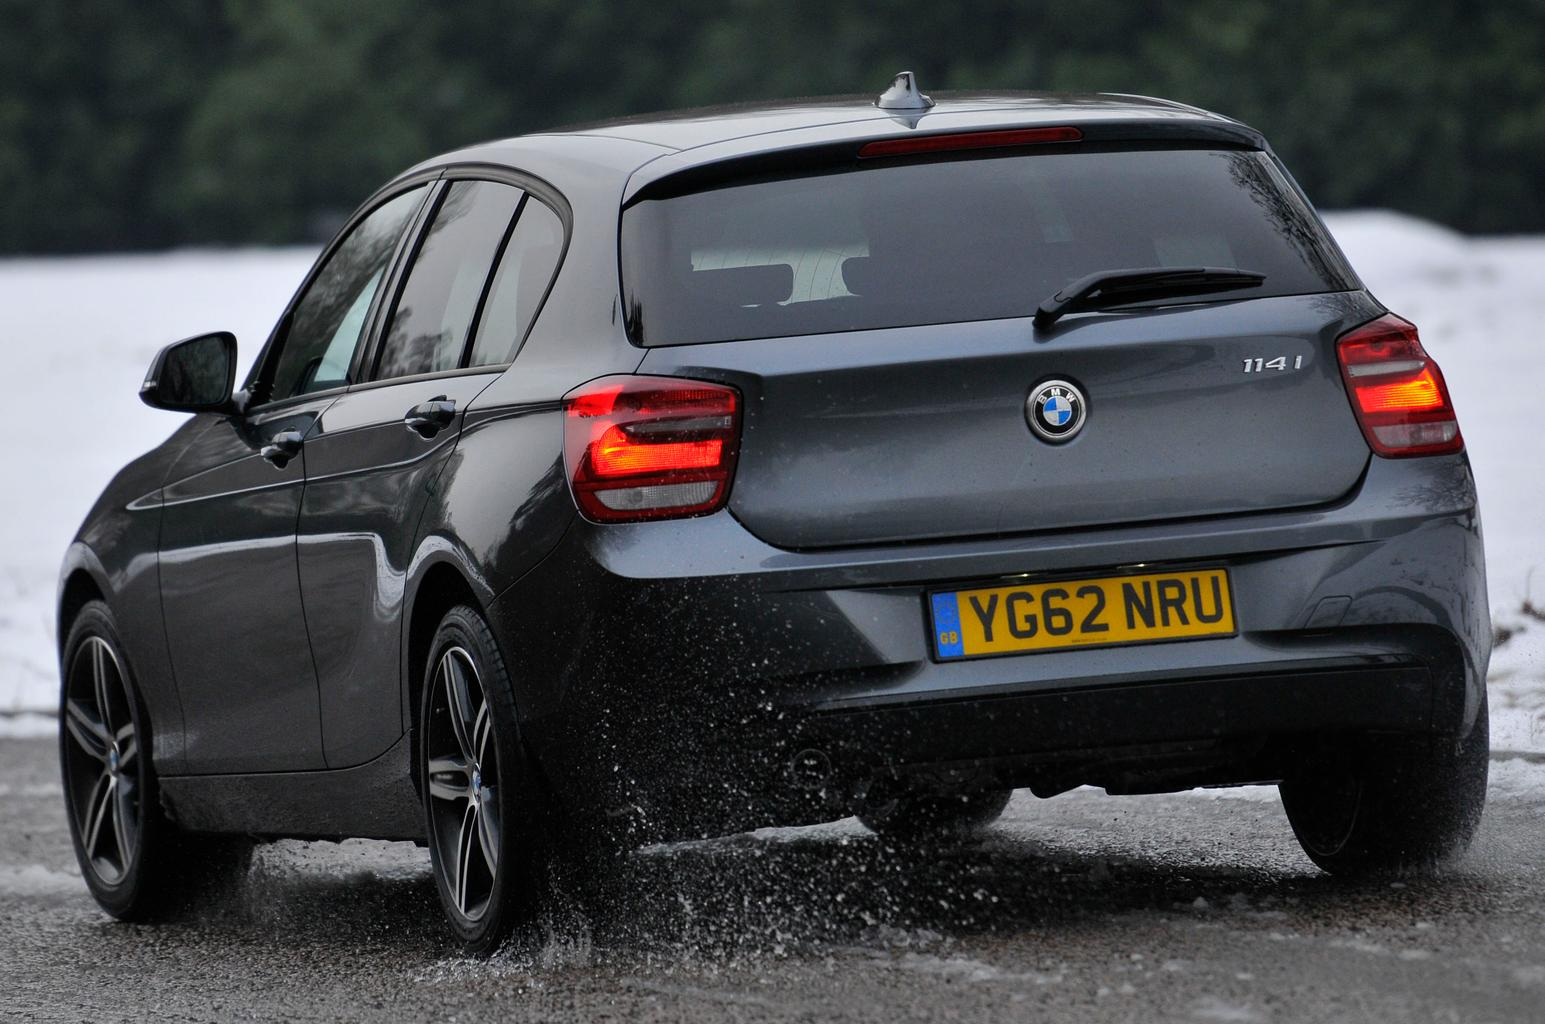 Top 10 used family cars for less than £10,000 (and the ones to avoid)